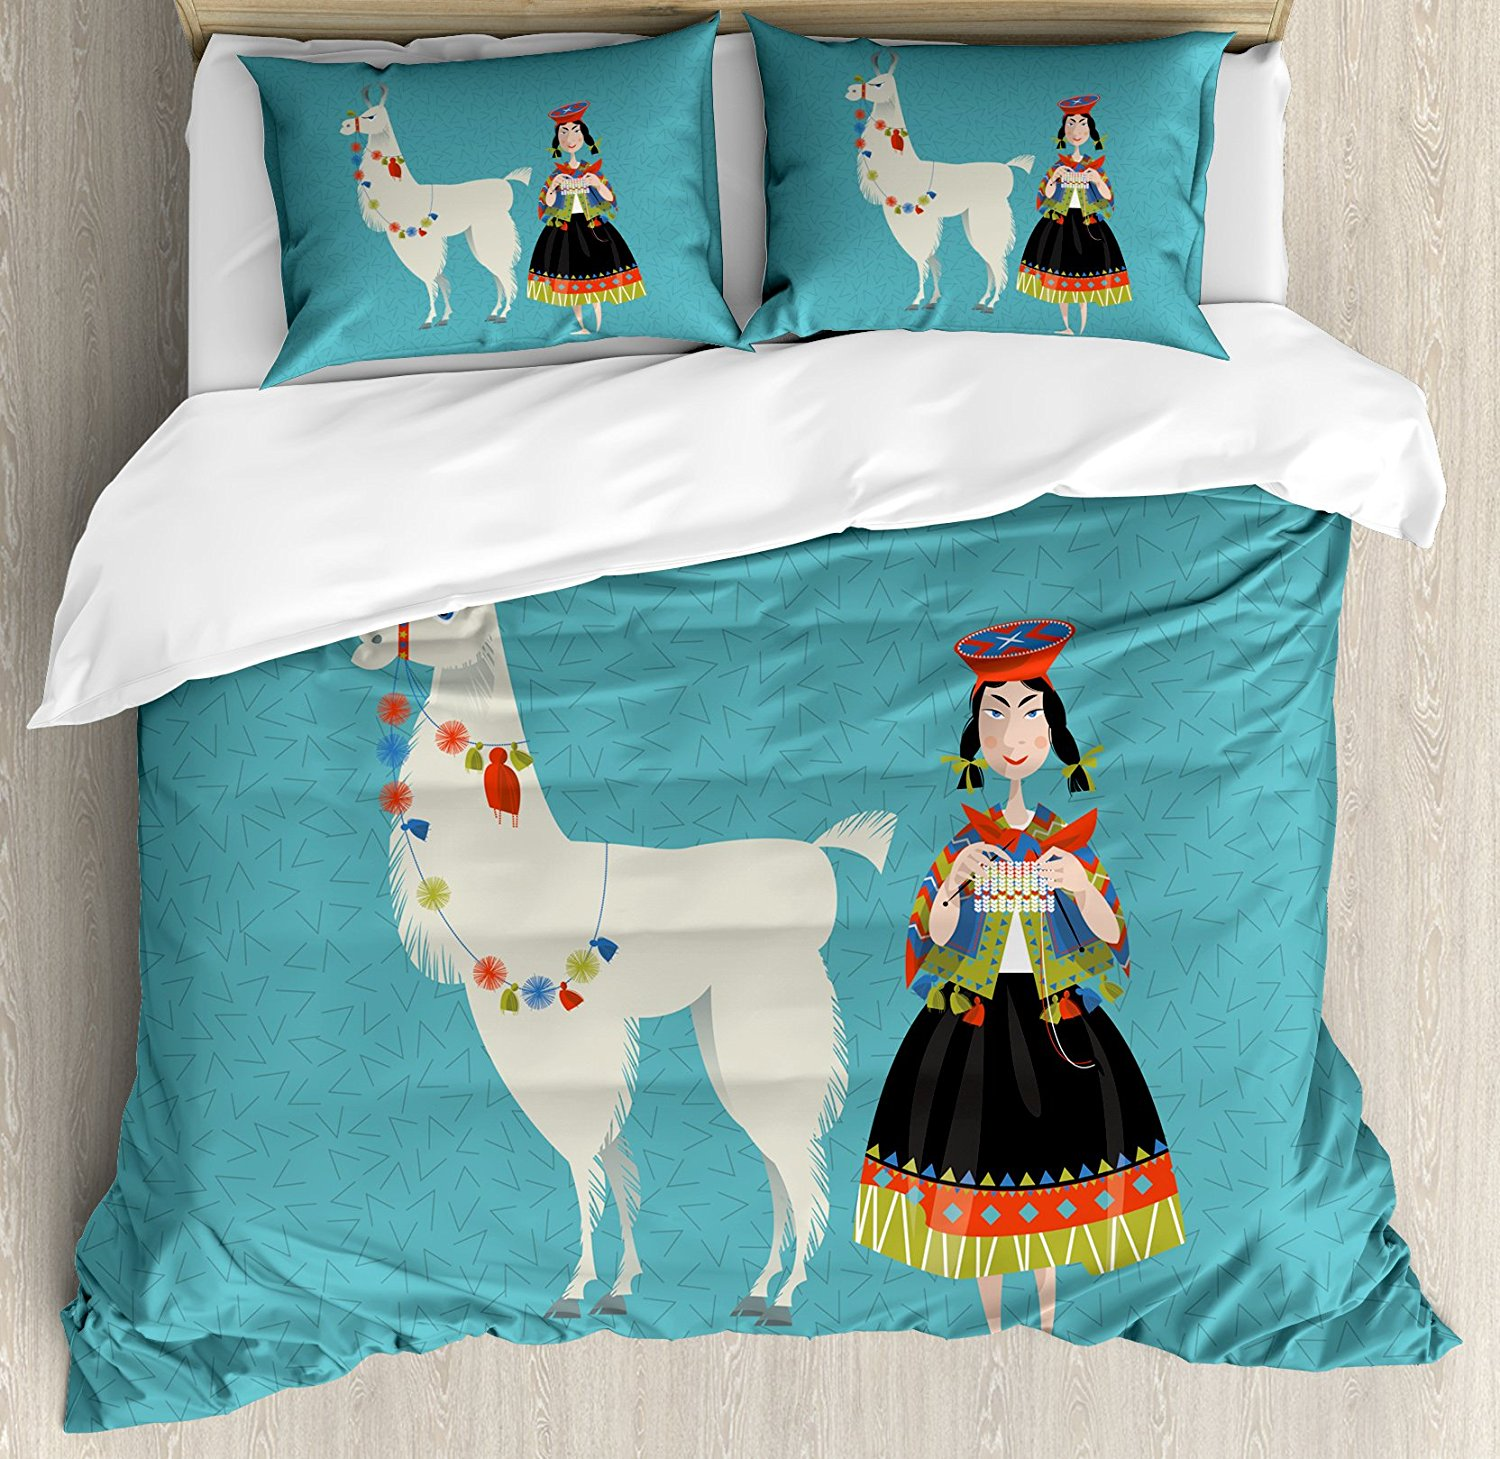 Llama Duvet Cover Set 4 Piece Bedding Set